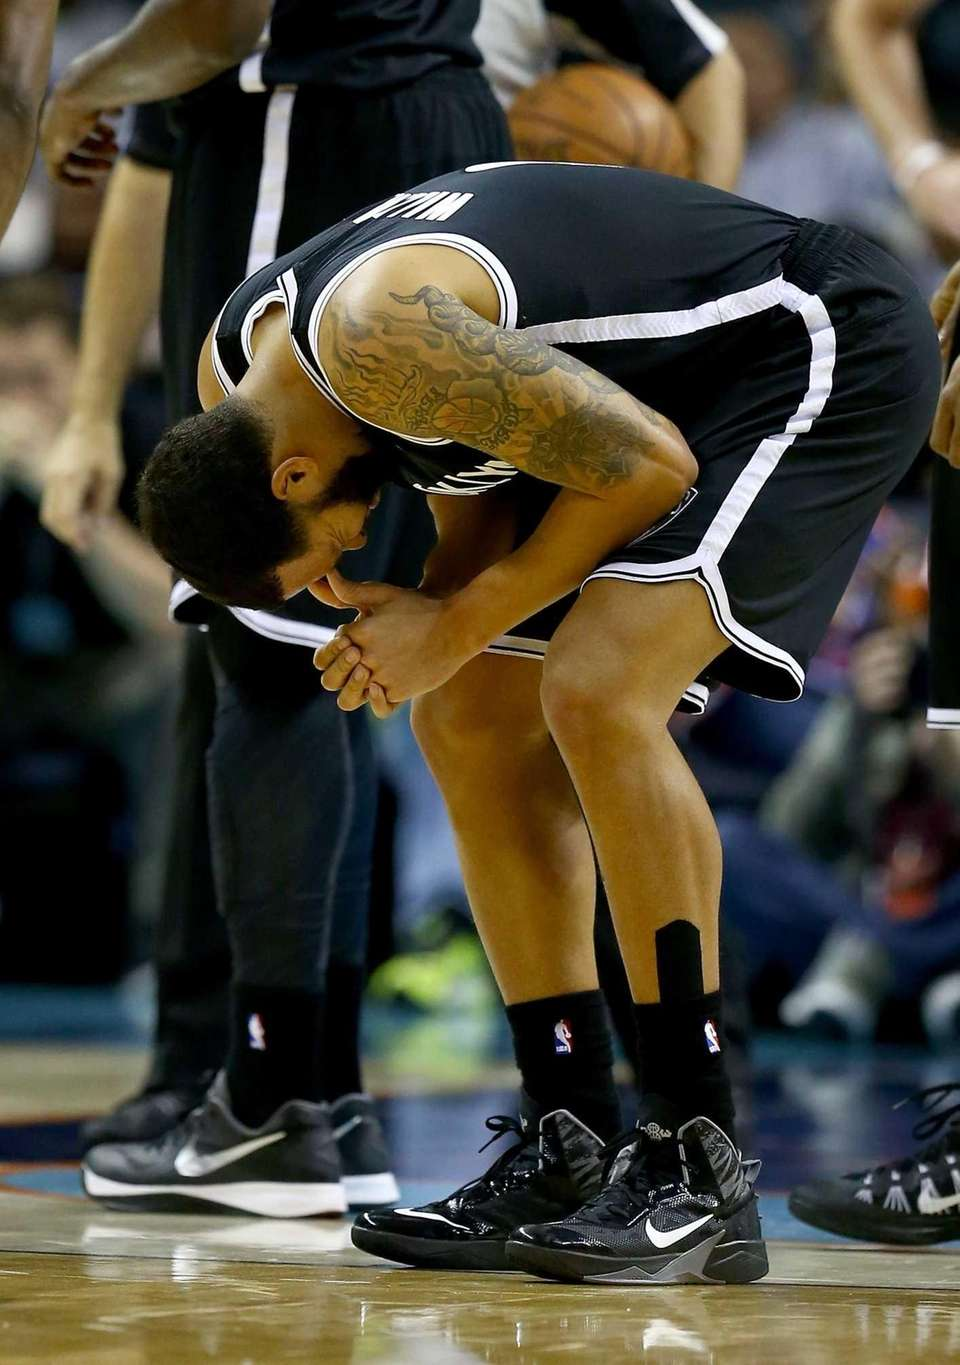 Deron Williams reacts after an injury in the